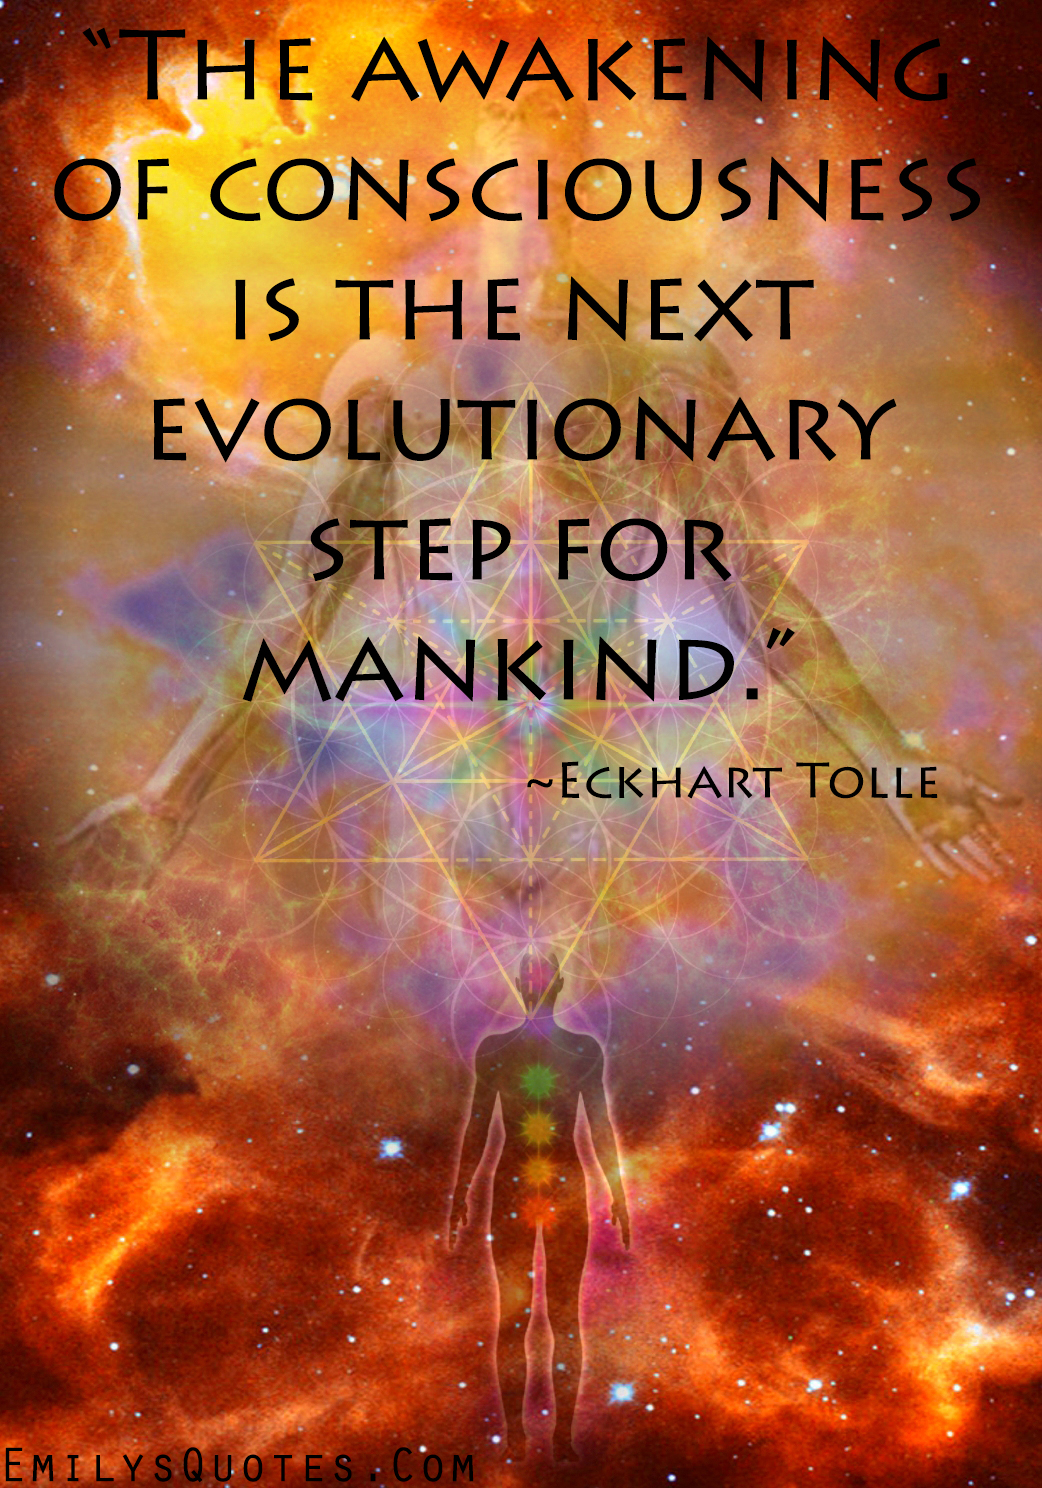 Spiritual Awakening Quotes The Awakening Of Consciousness Is The Next Evolutionary Step For